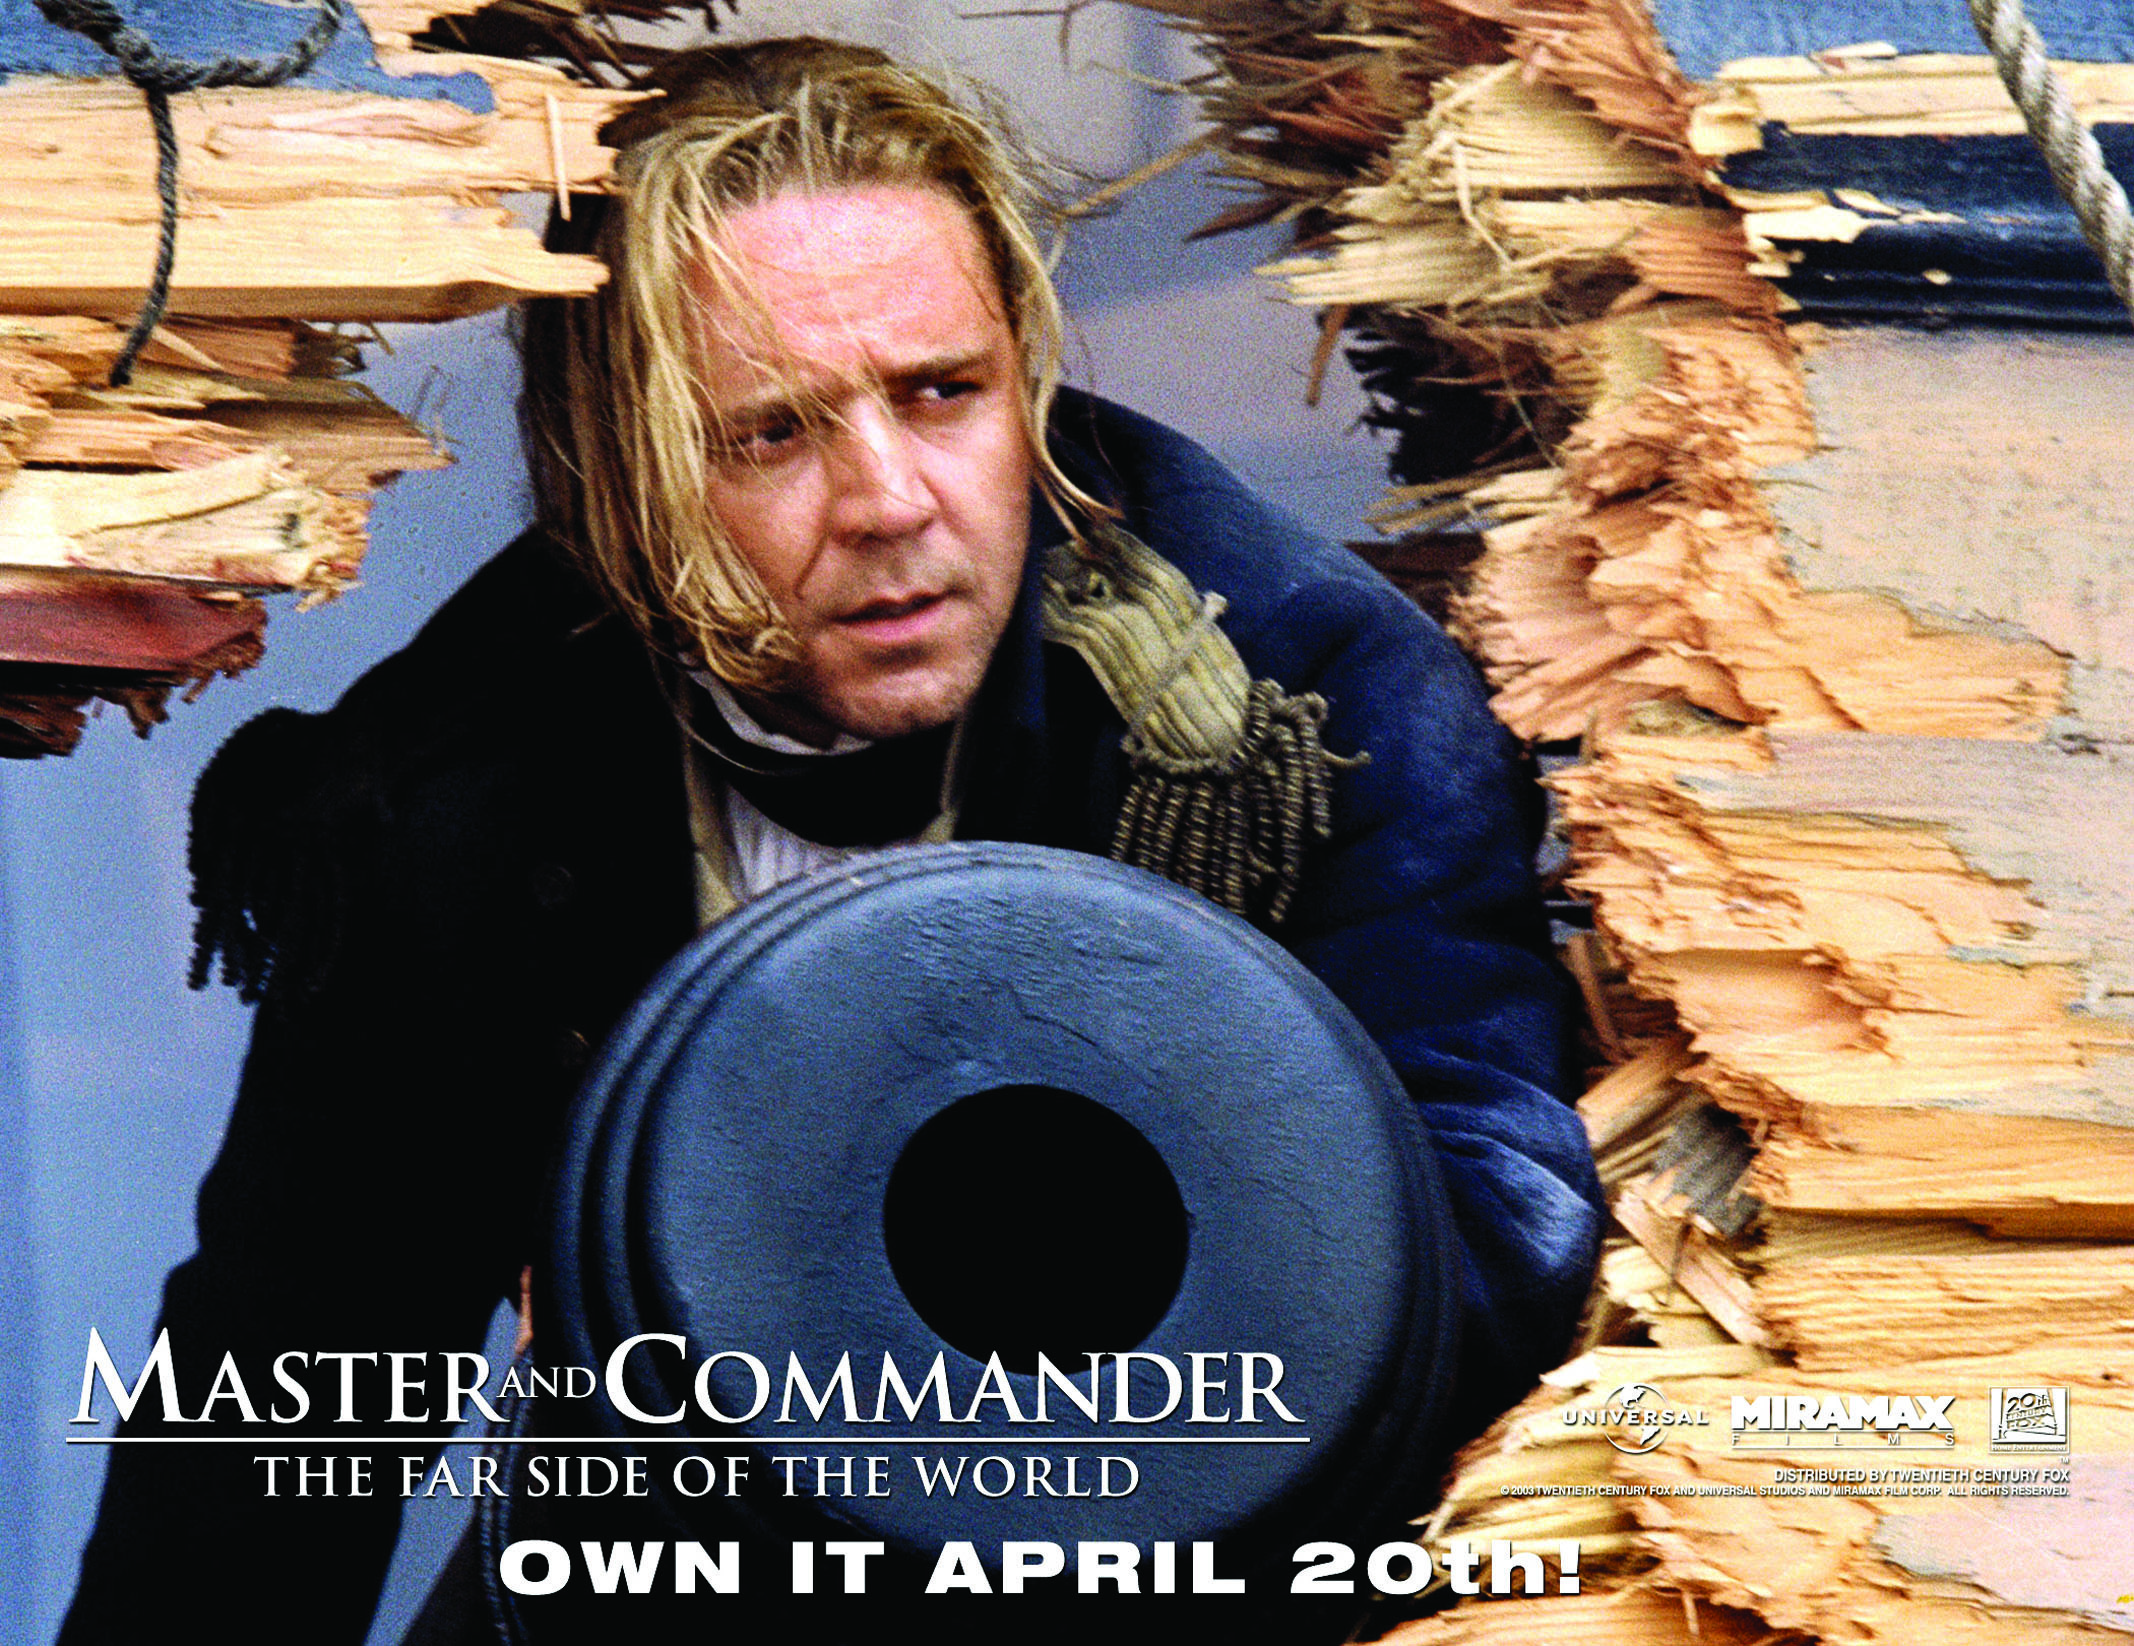 Image result for Master and Commander release posters